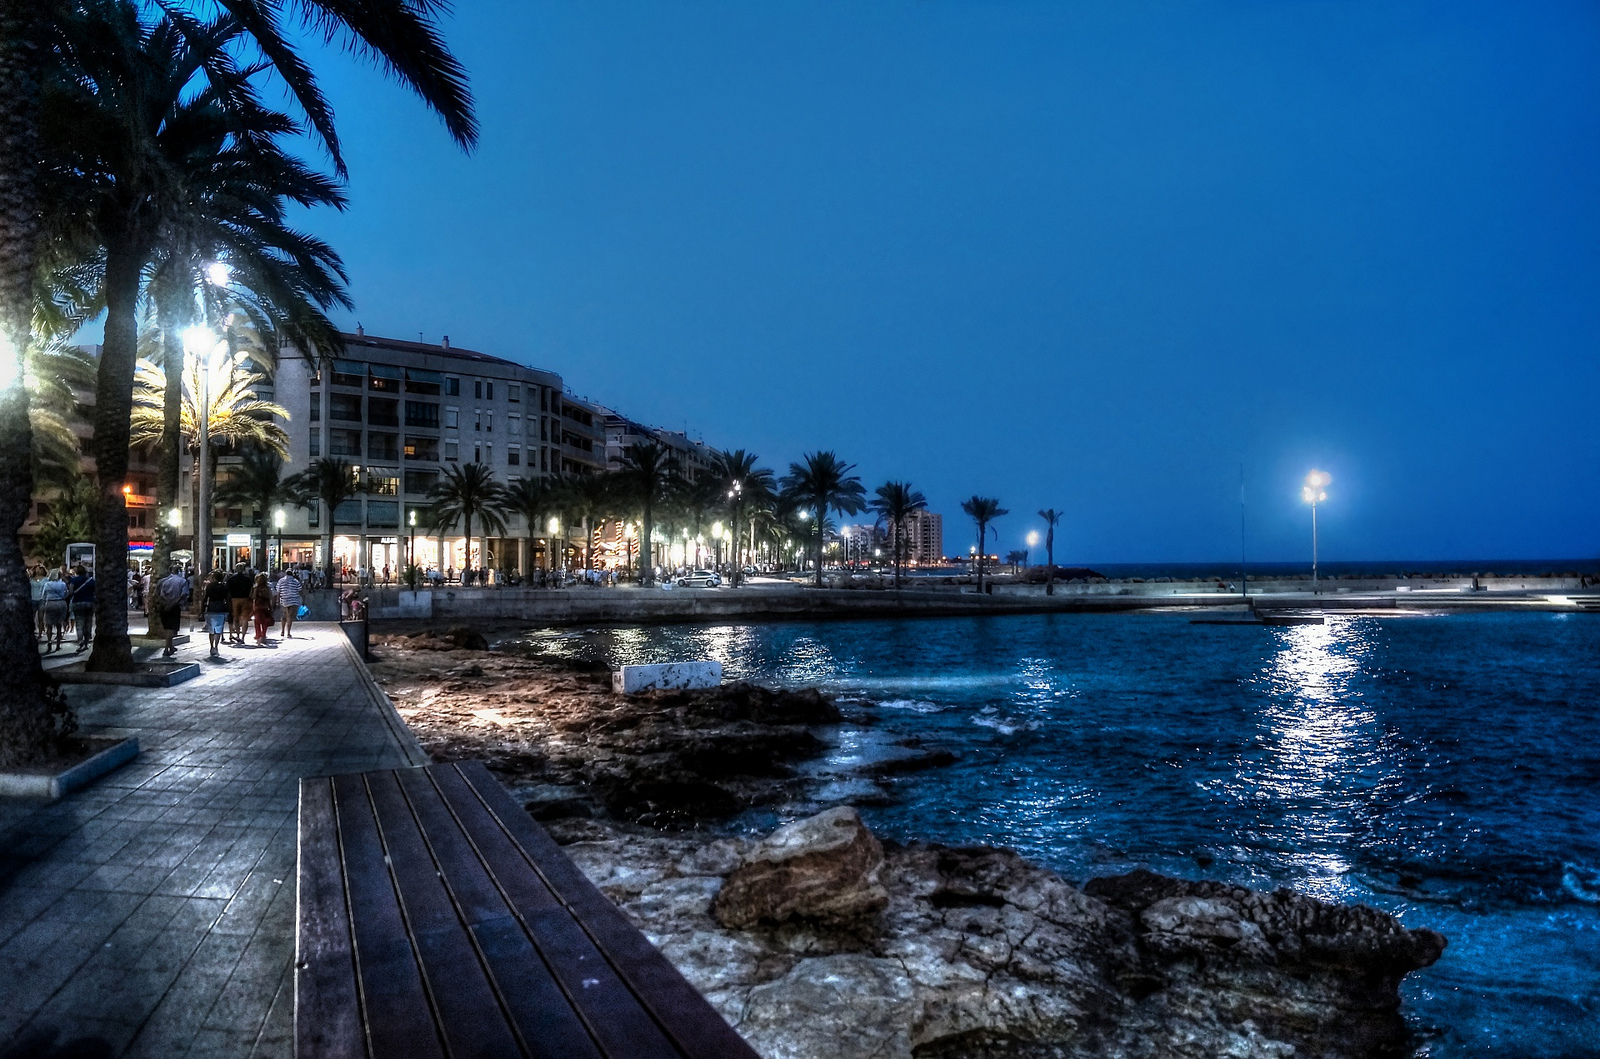 ITSH Property Torrevieja by night 21